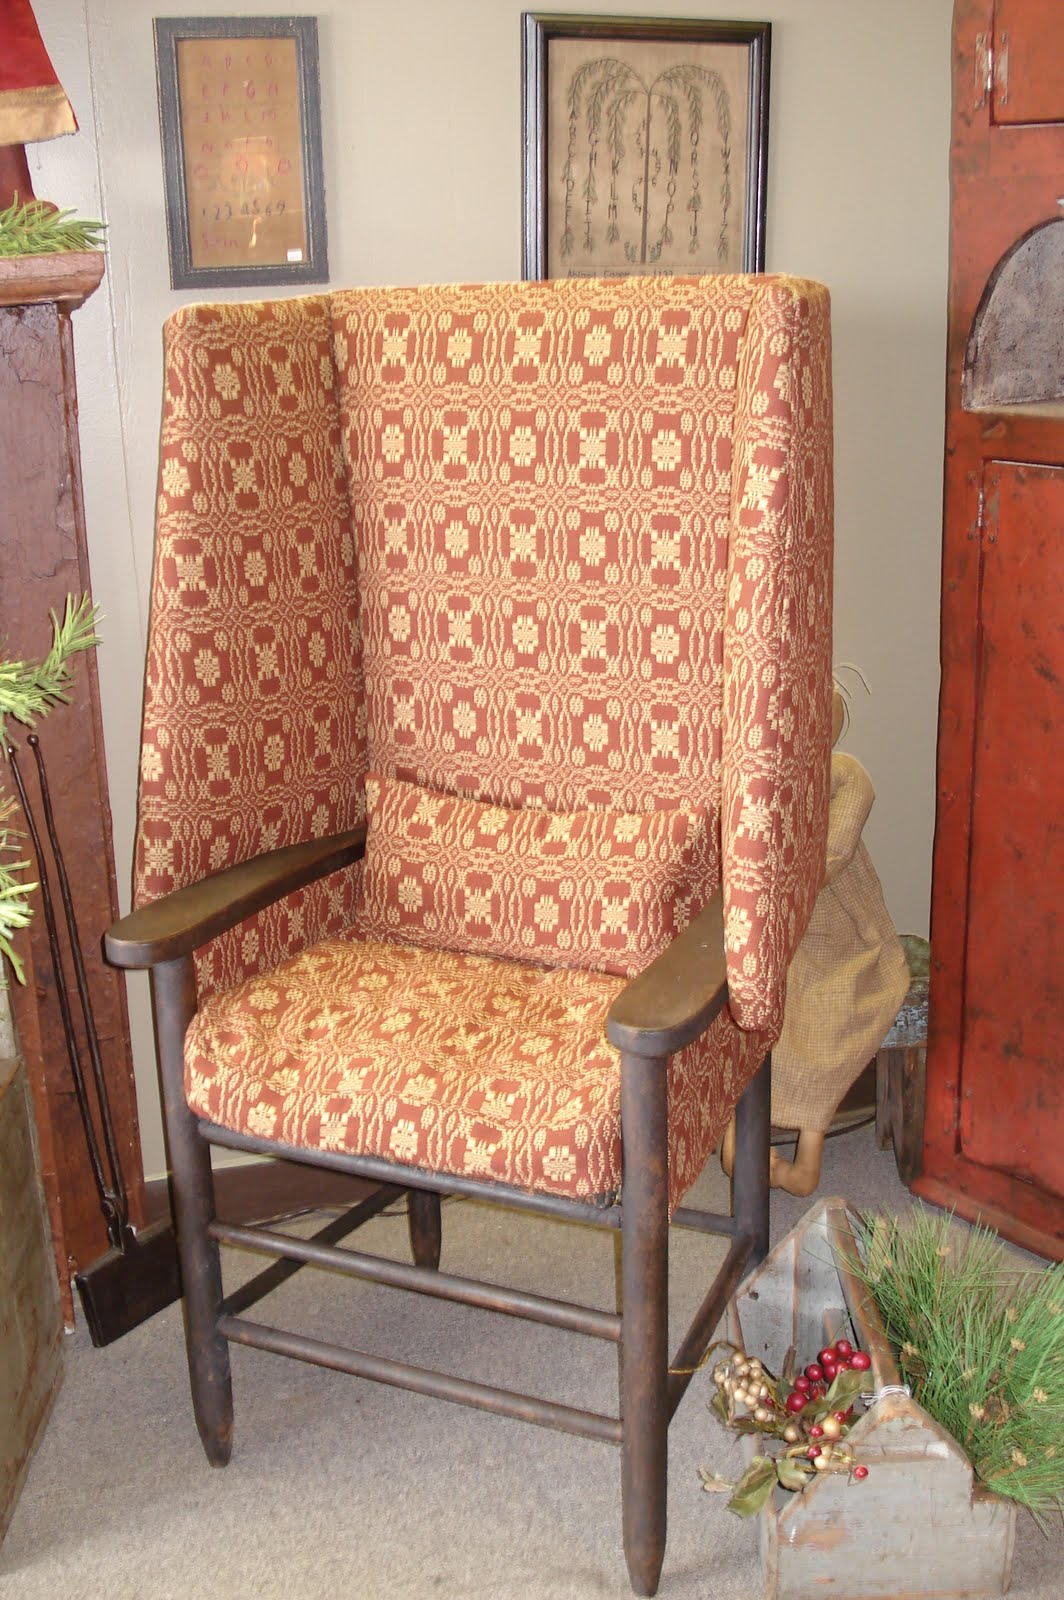 A Wingback Chair Is A Staple In Country Decorating. It Adds A Certain Charm  To The Country Setting. Imagine This Prim Chair By The Fireplace And  Enjoying A ...